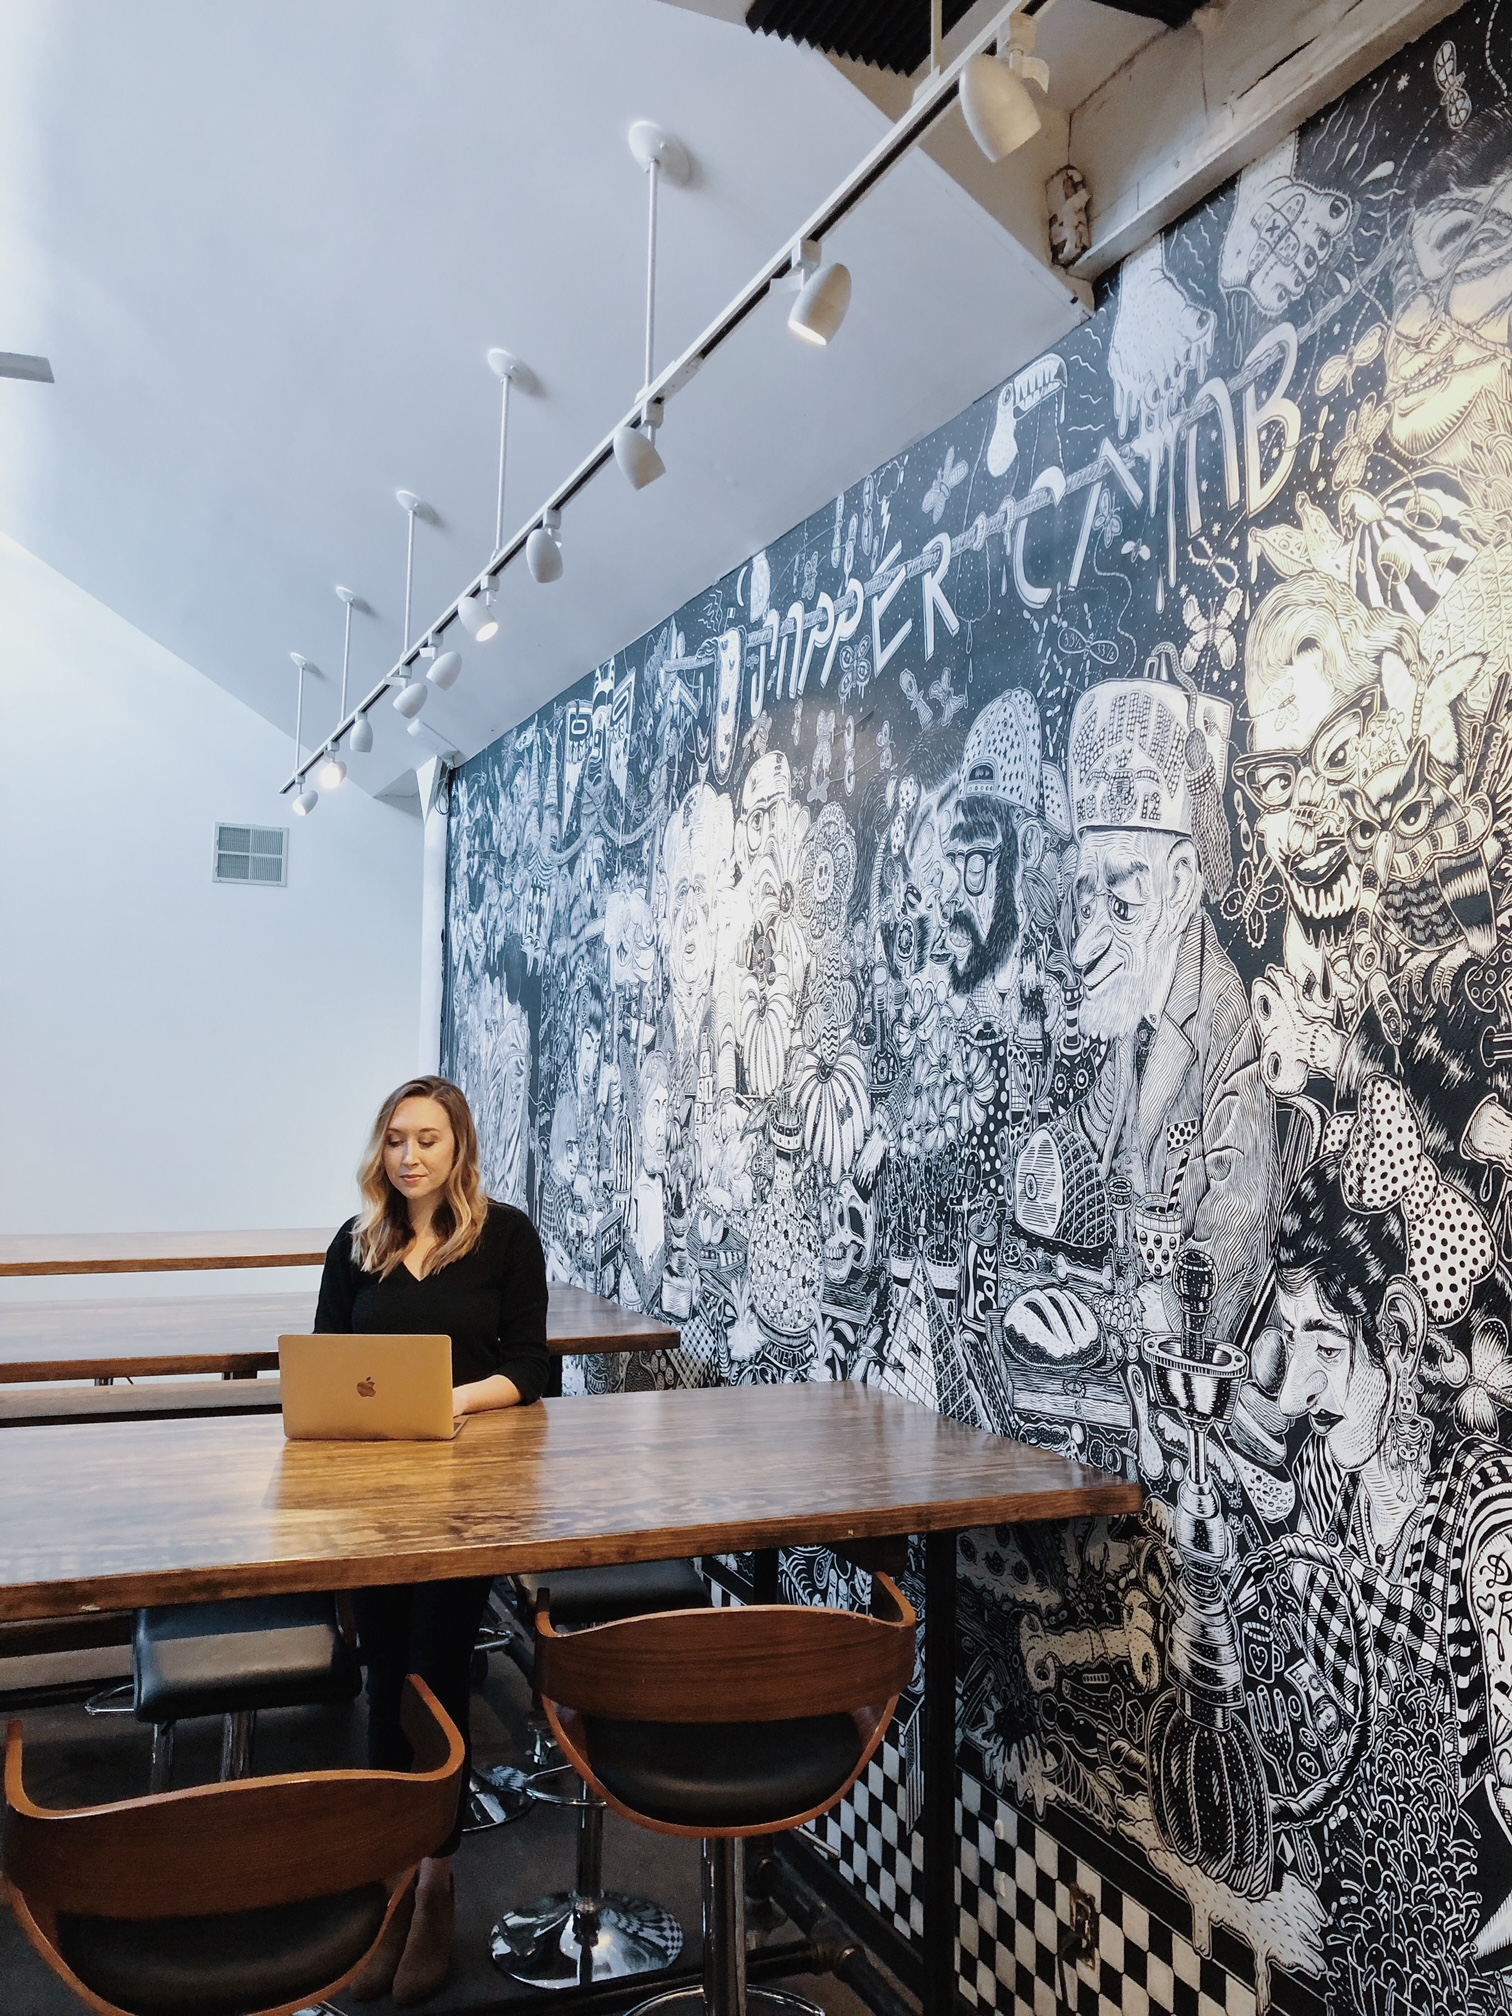 3 Reasons Why A Coworking Space Will Boost Your Biz!